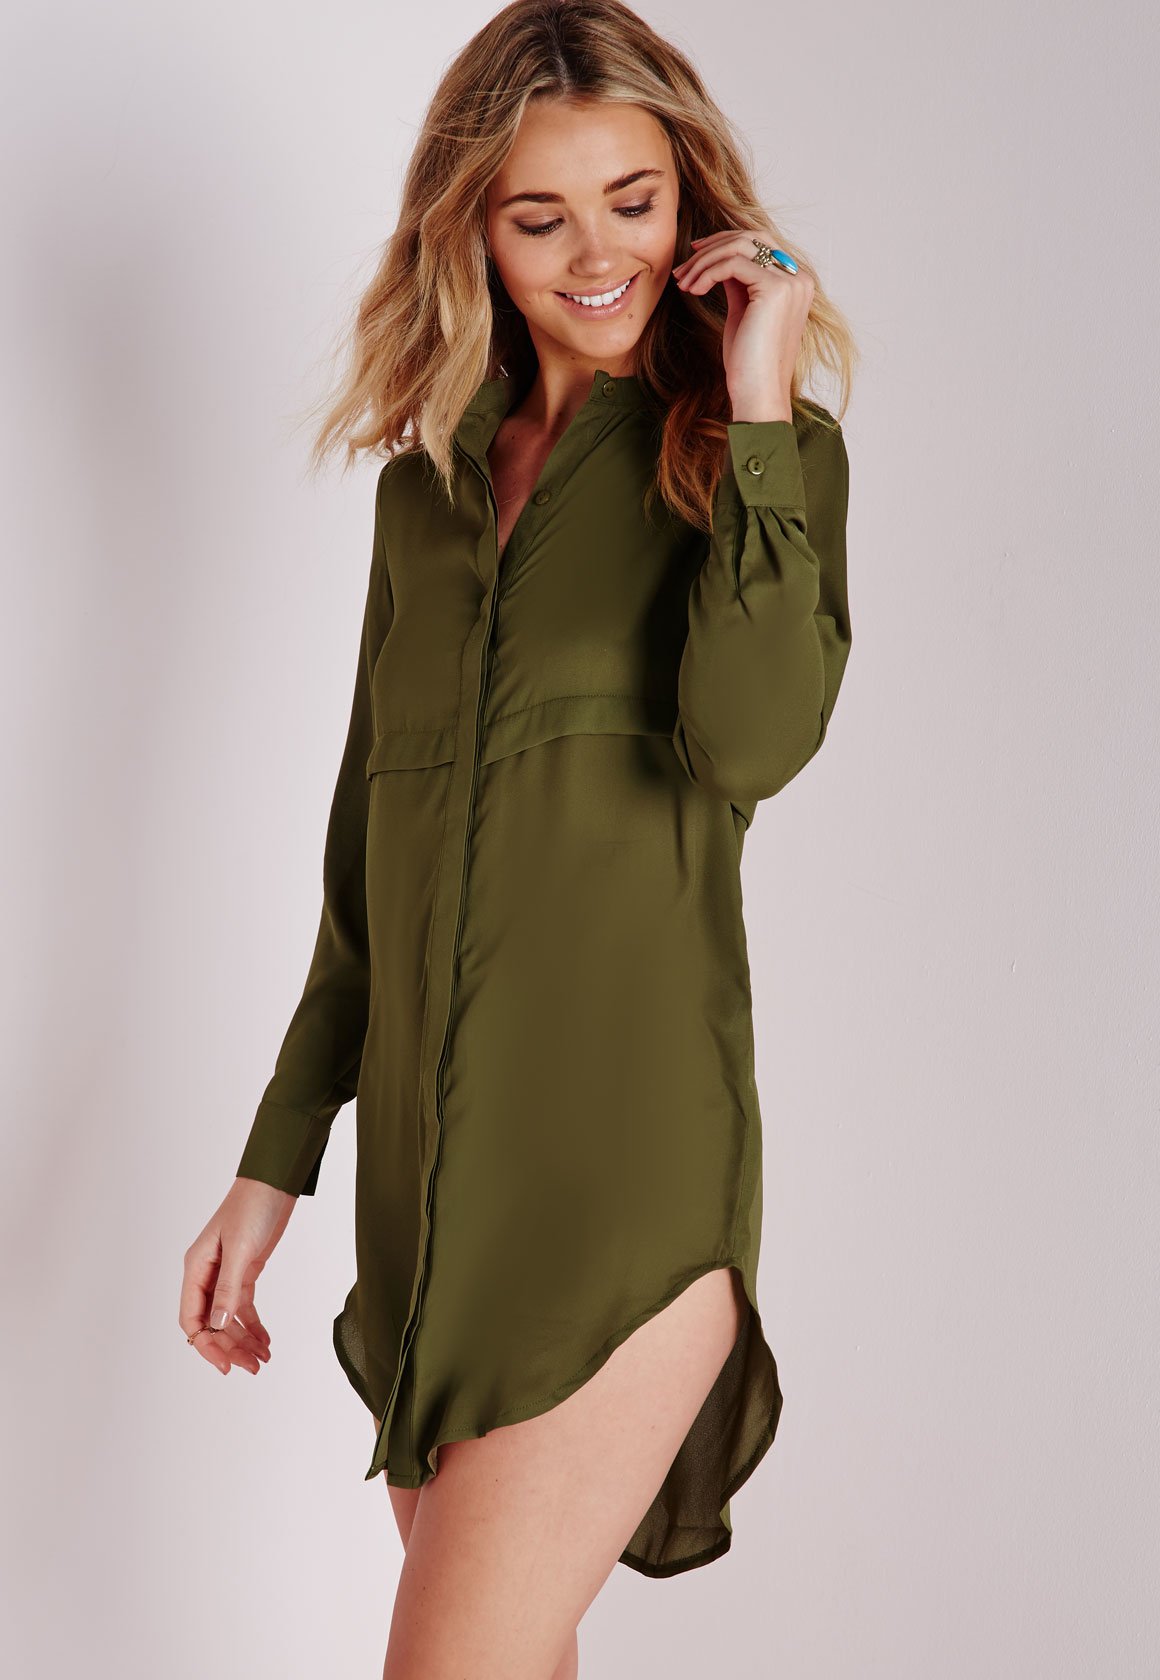 lyst missguided oversized shirt dress khaki in green